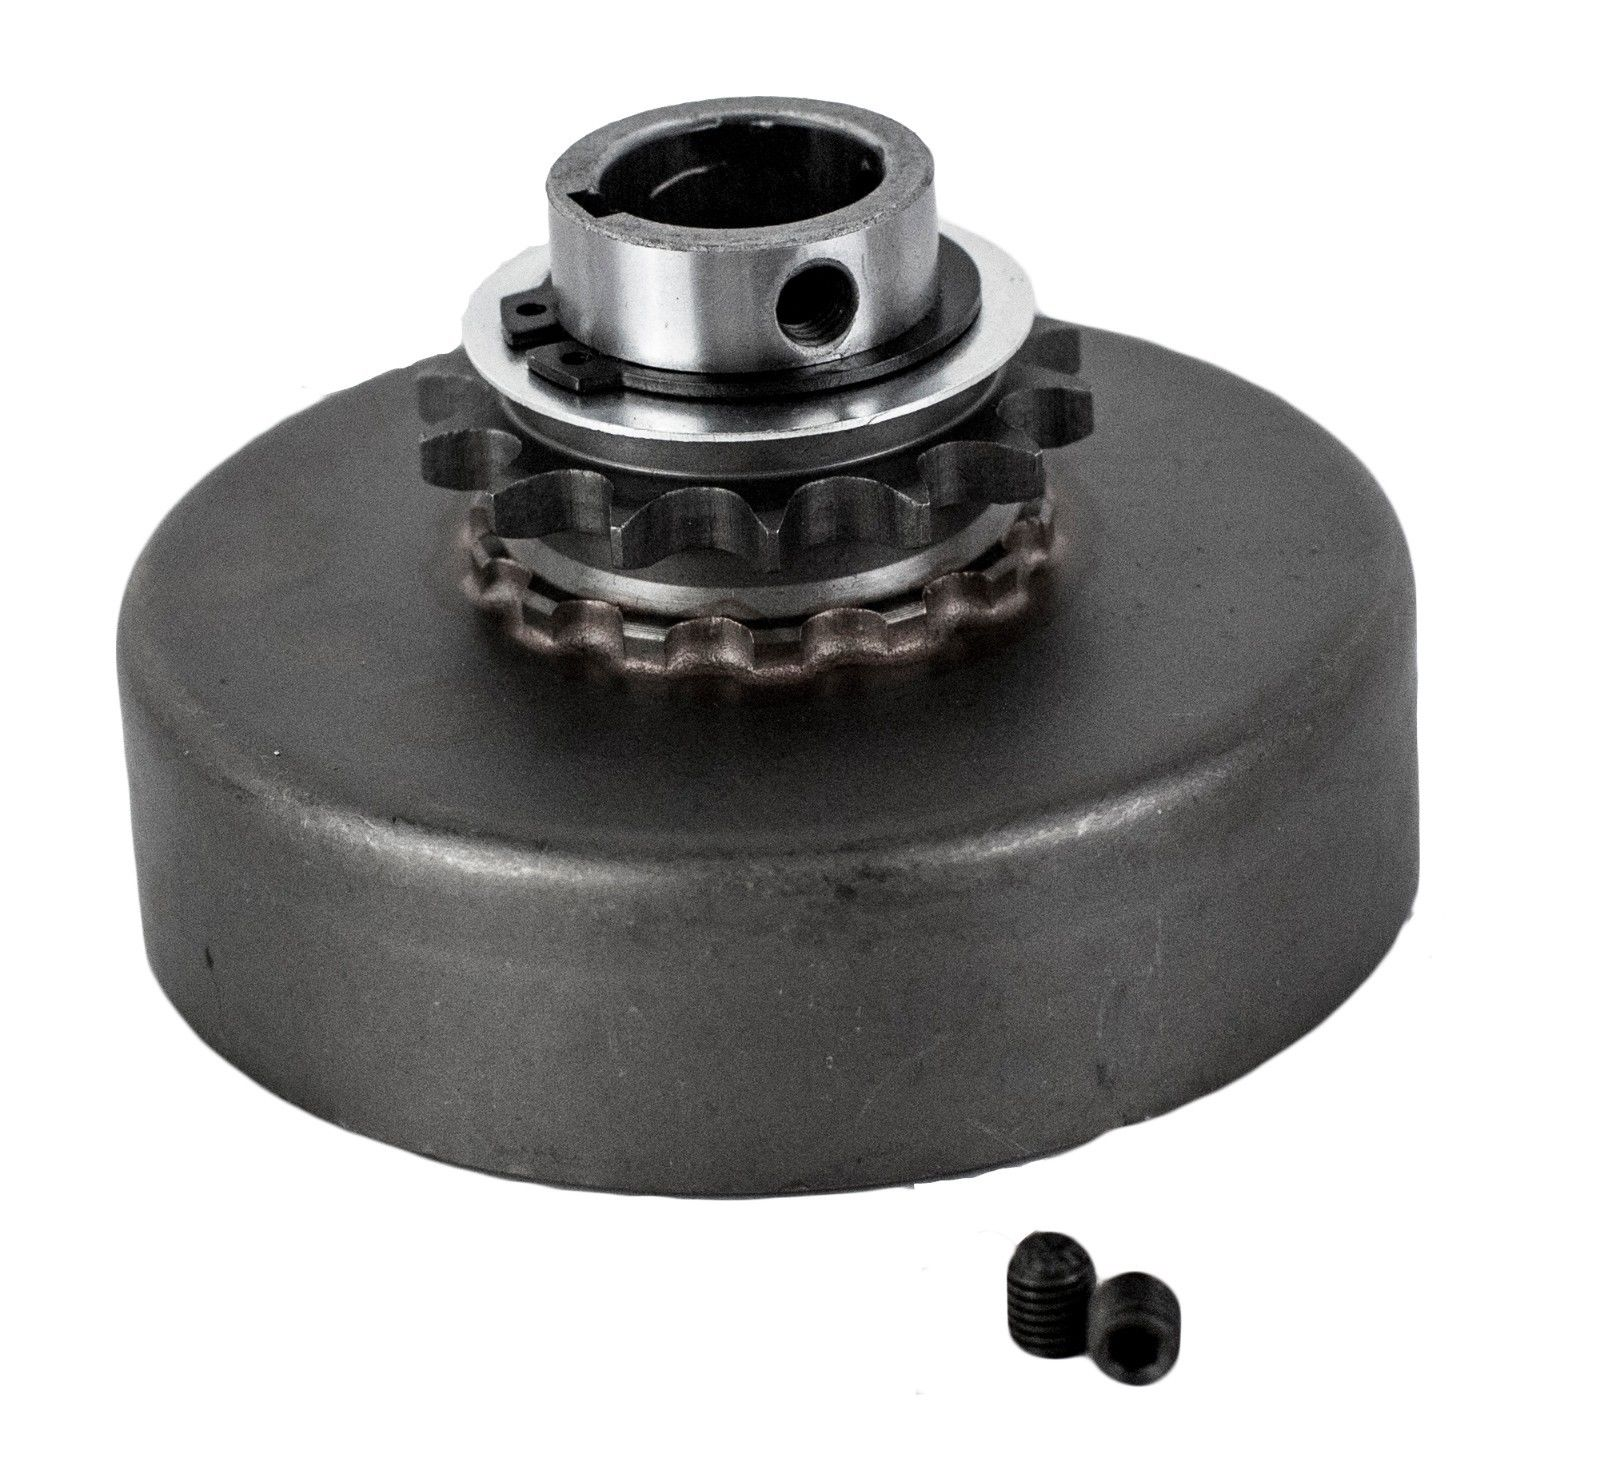 Centrifugal Go Kart Clutch 1 Quot 14t 14 Tooth Heavy Duty For 40 41 420 Chain 13hp Ebay